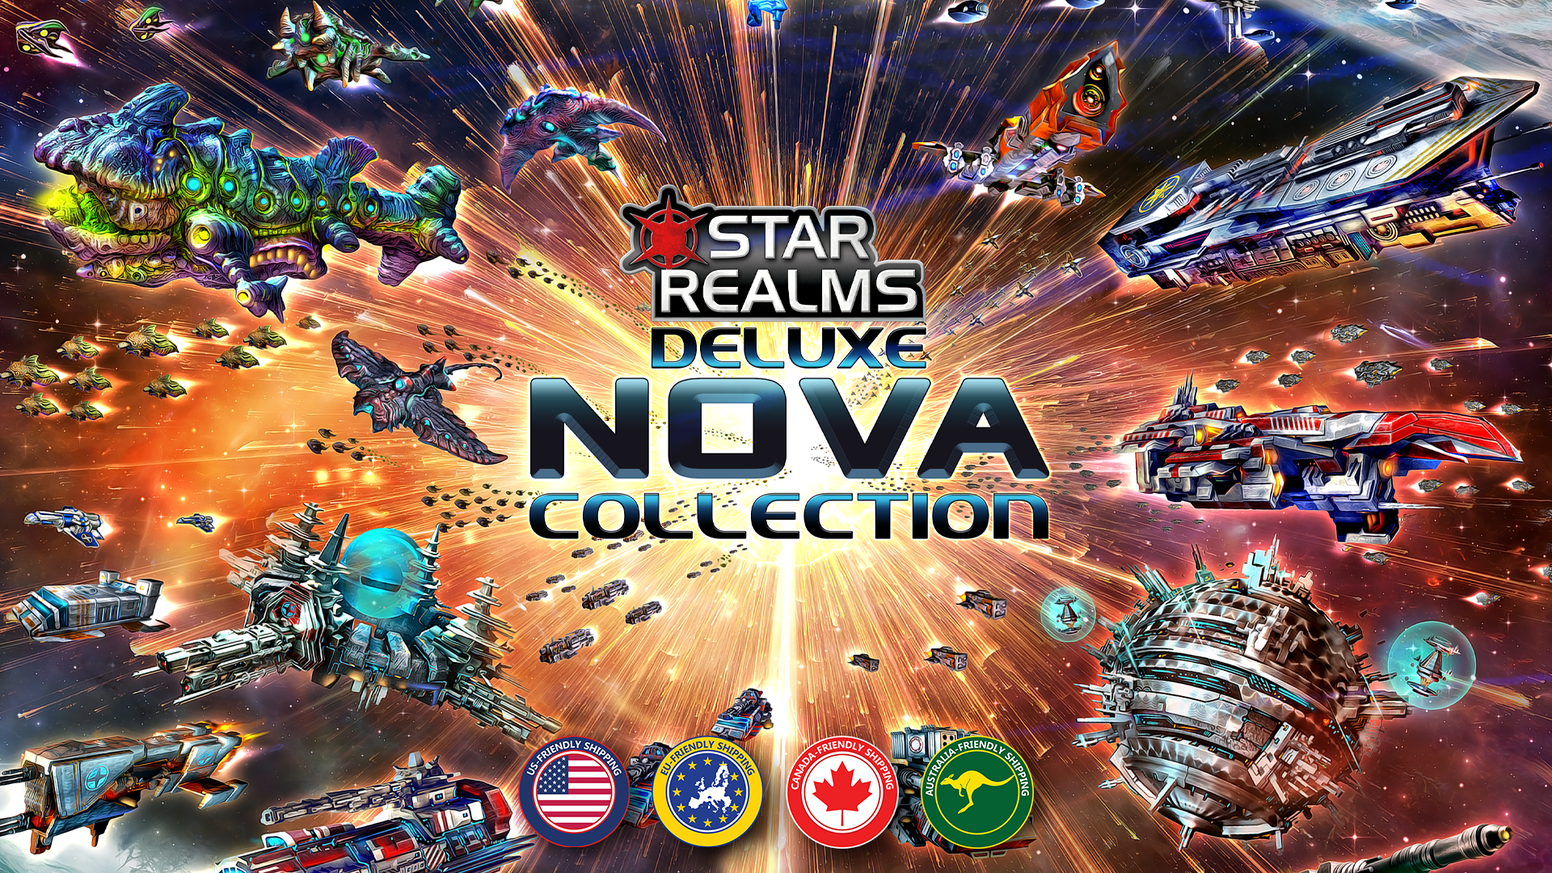 A deluxe 1-6 player Star Realms collection including over 250 foil cards, 6 score dials and a custom game board!